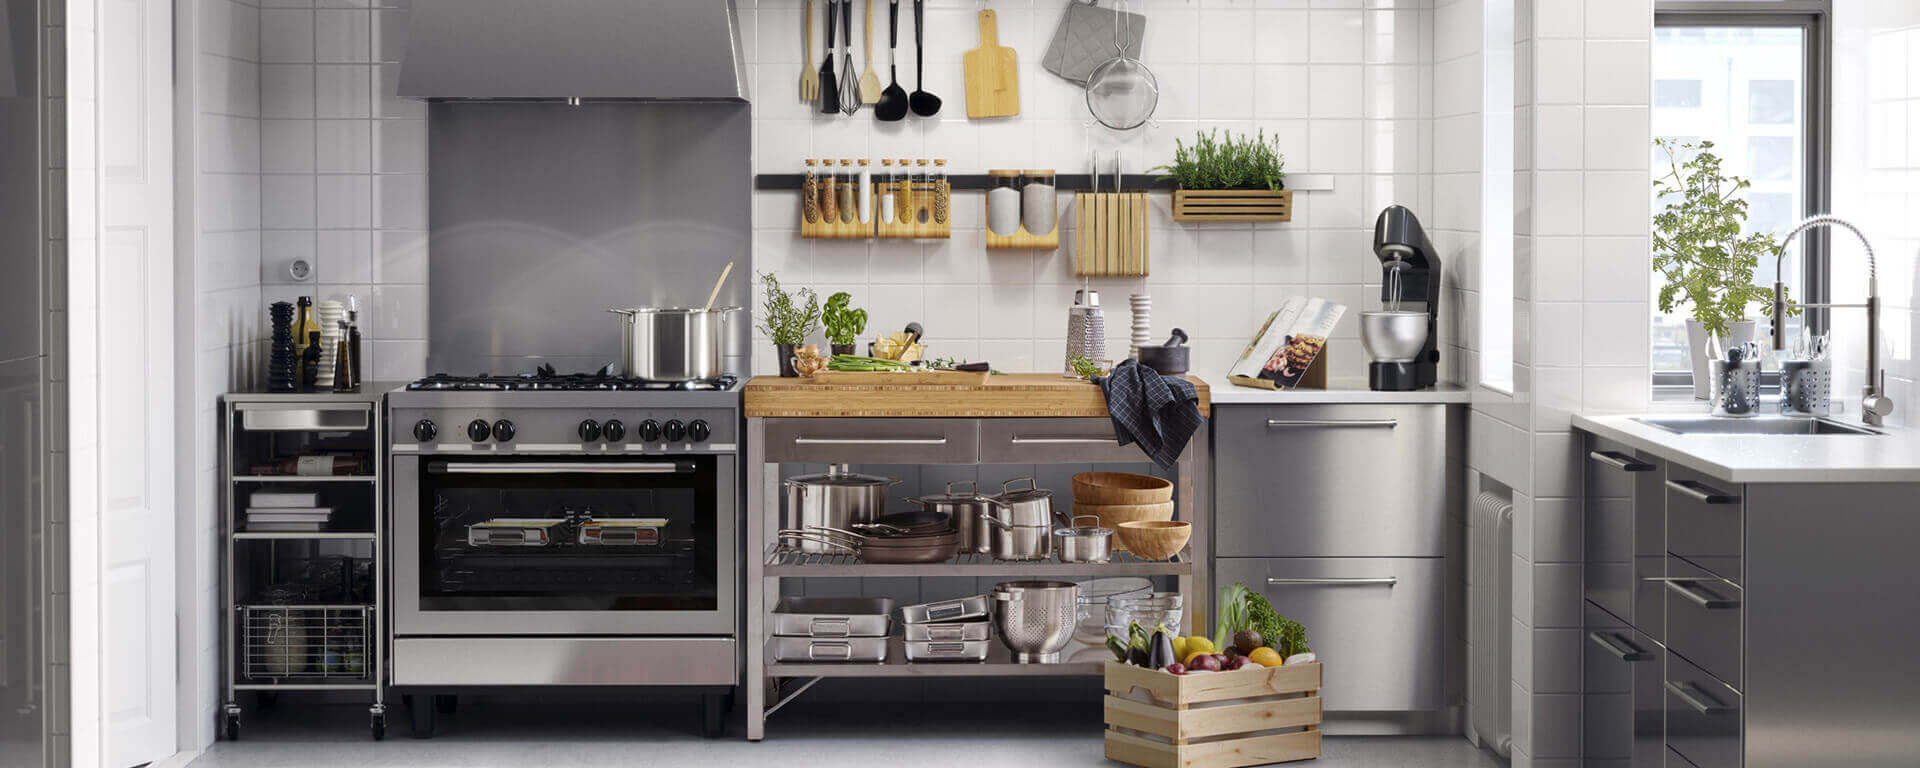 Commercial Catering Equipments